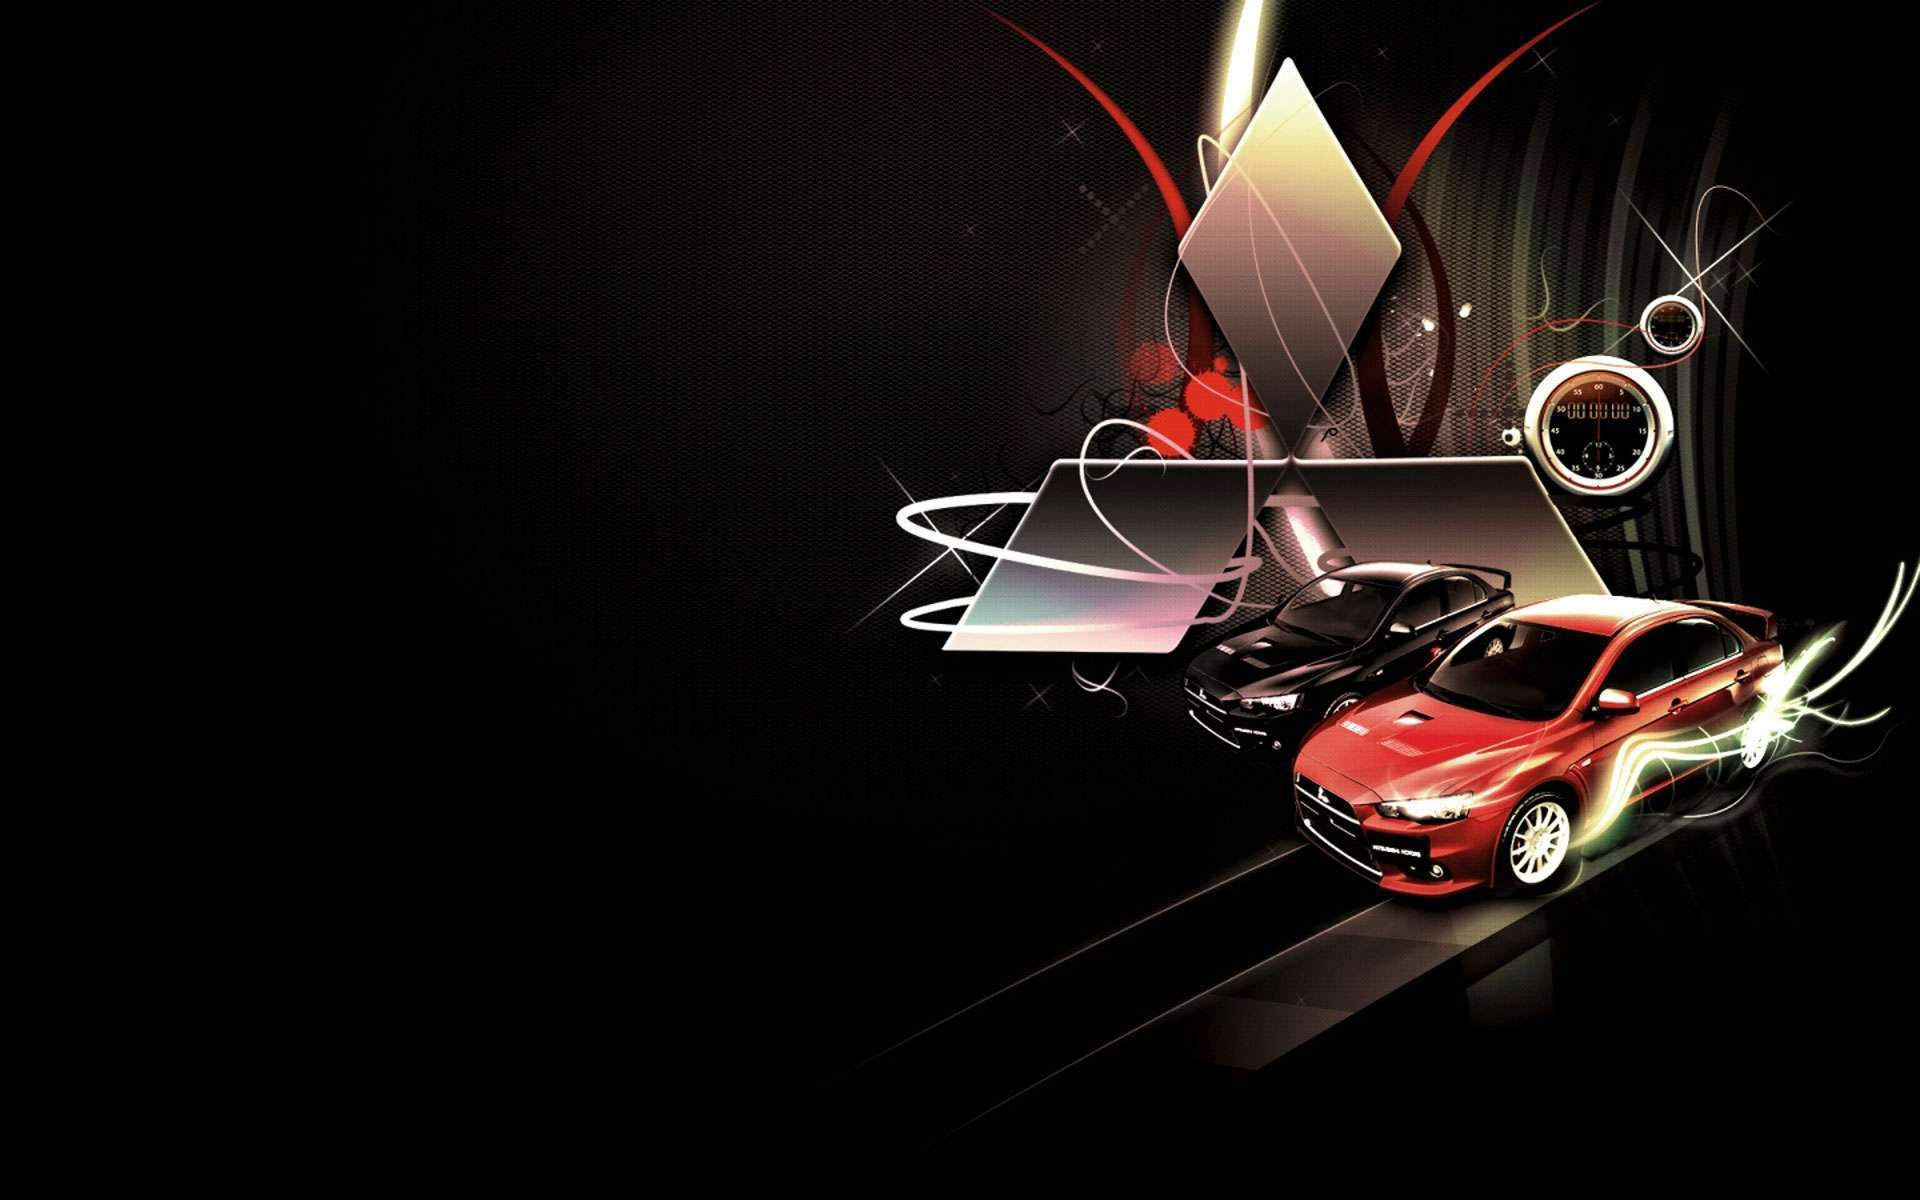 Abstract Car Wallpapers x